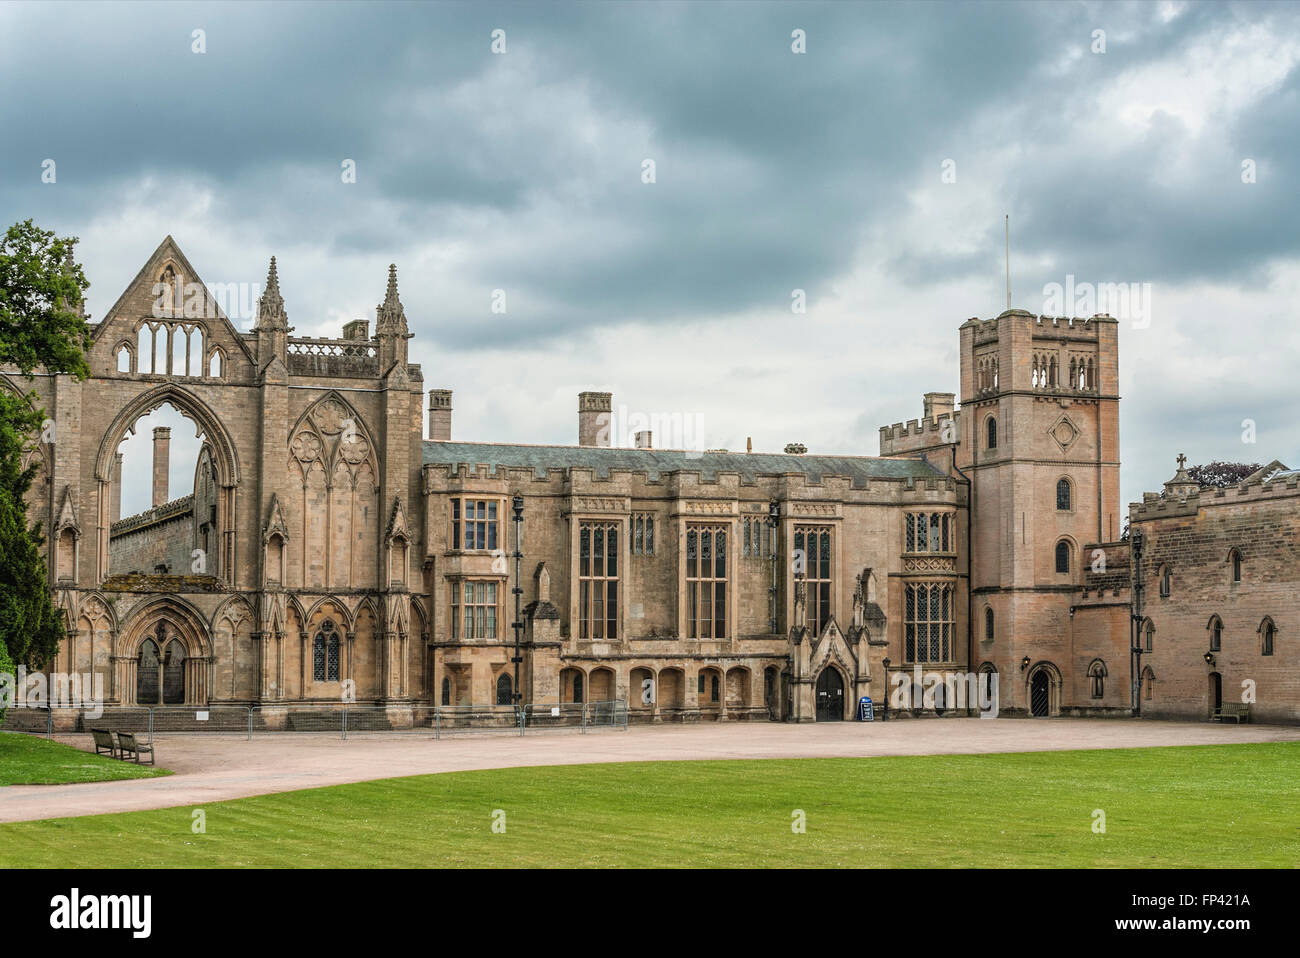 Main building of Newstead Abbey, Nottinghamshire, England | Hauptgebaeude der Newstead Abbey - Stock Image